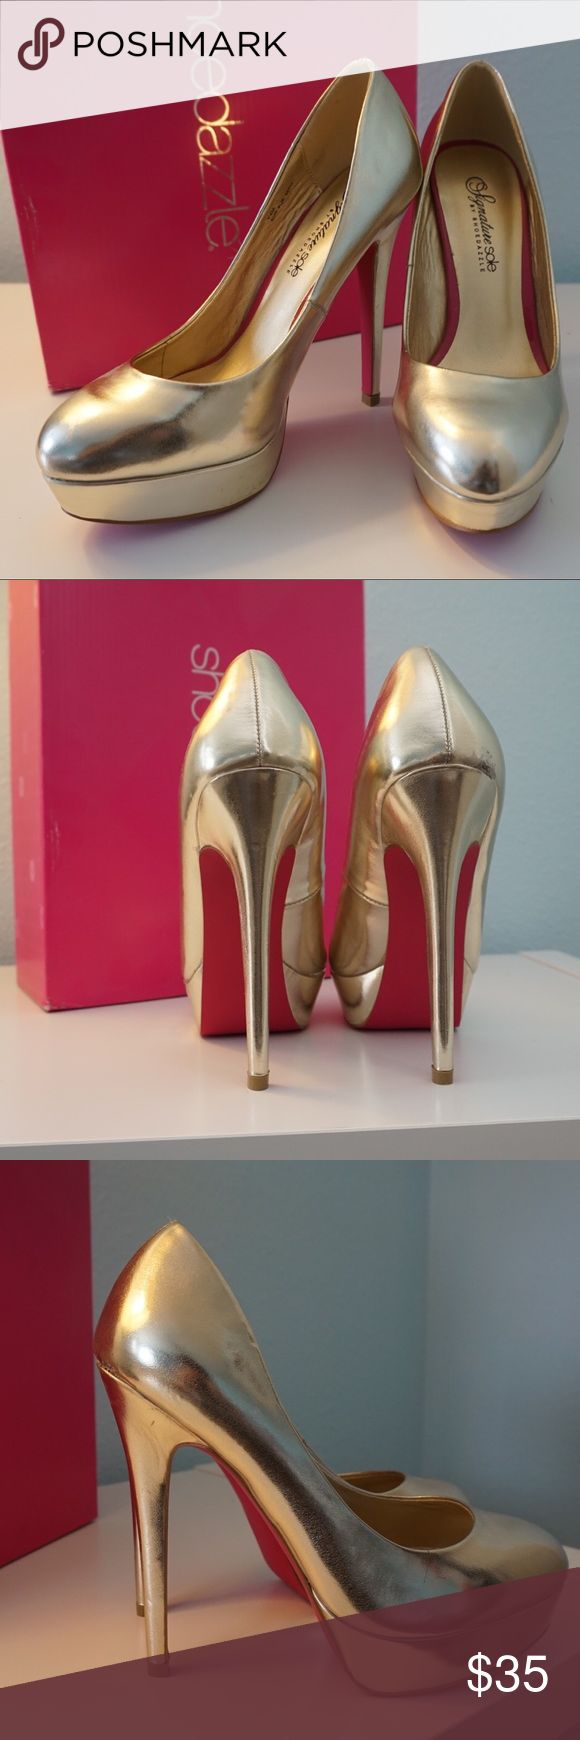 NWT ShoeDazzle Platform Heels Never worn! Brand new! They're not my size and therefore I'm selling them. In perfect condition and still has box and tags with shoes! Shoe Dazzle Shoes Heels